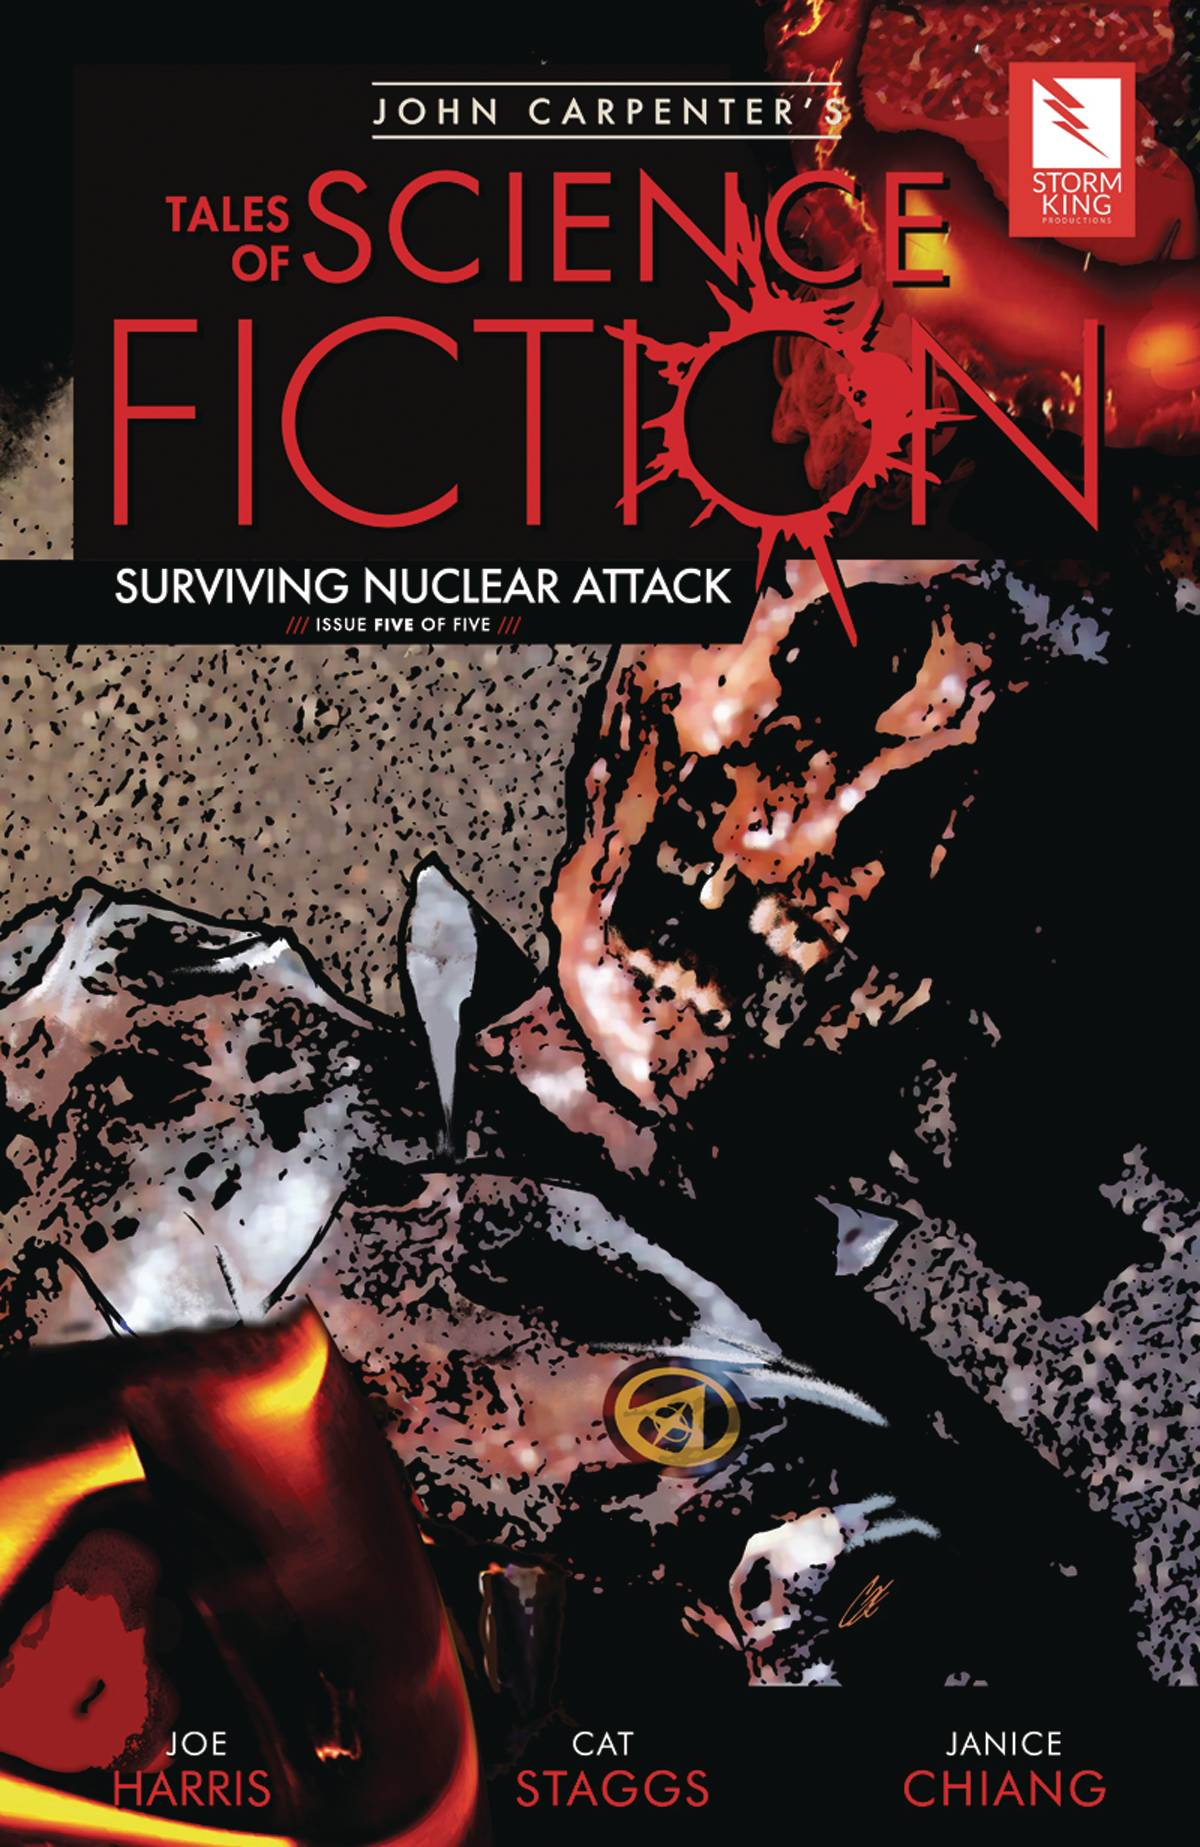 John Carpenter's Tales of Science Fiction: Surviving Nuclear Attack #5 (2020)